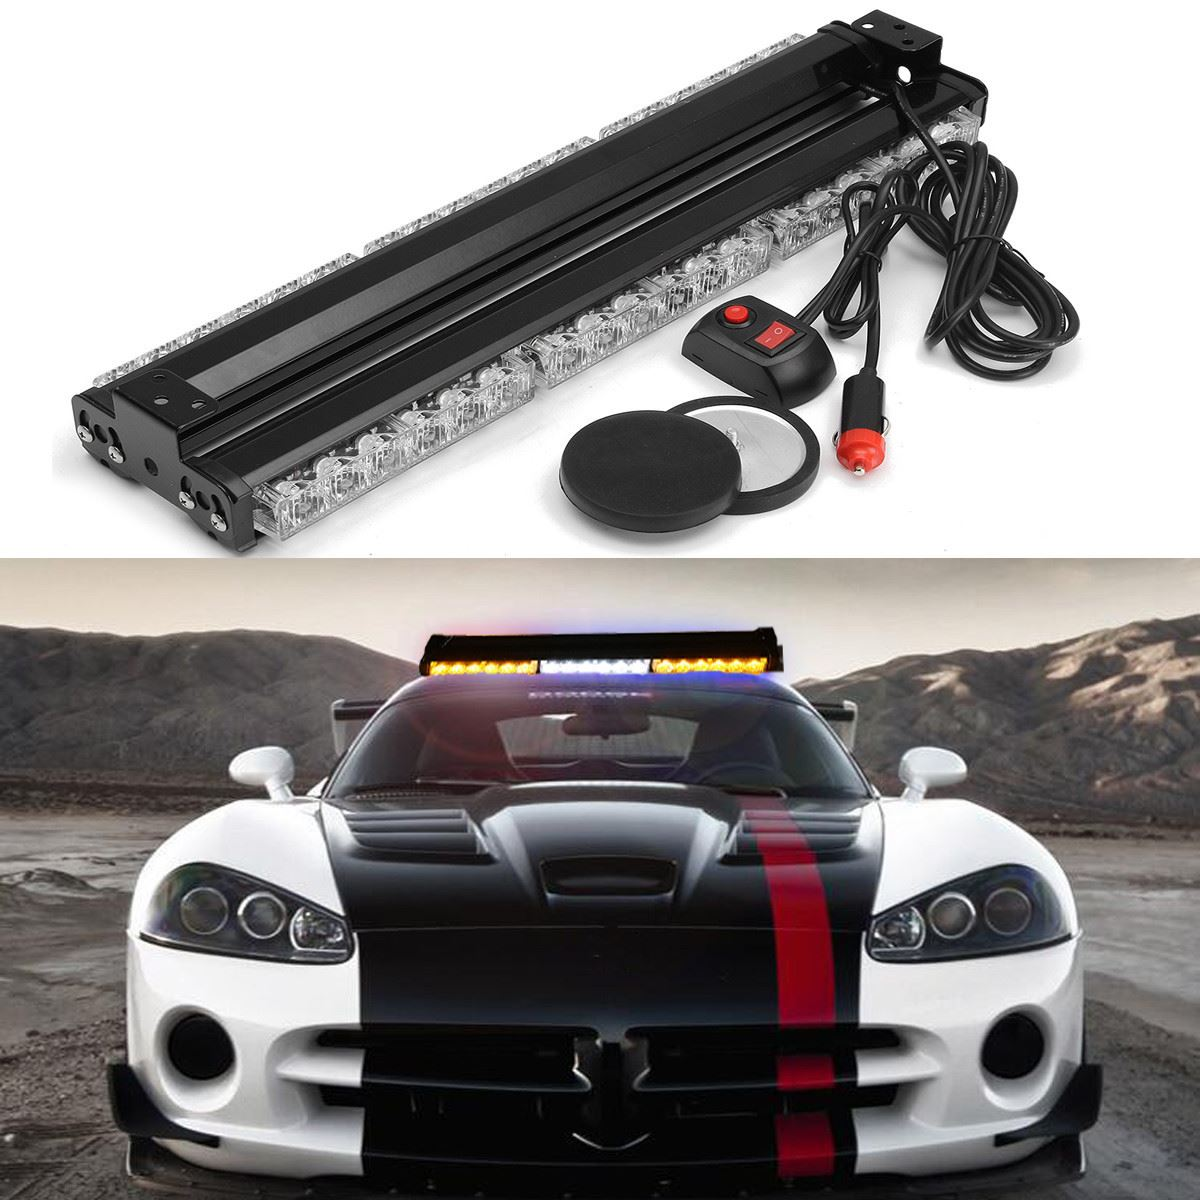 ФОТО Double Side 12V 36LED Car Emergency Strobe Flashing Light Rescue Vehicle Lamp Warning Lighting Work Light Bar Amber White